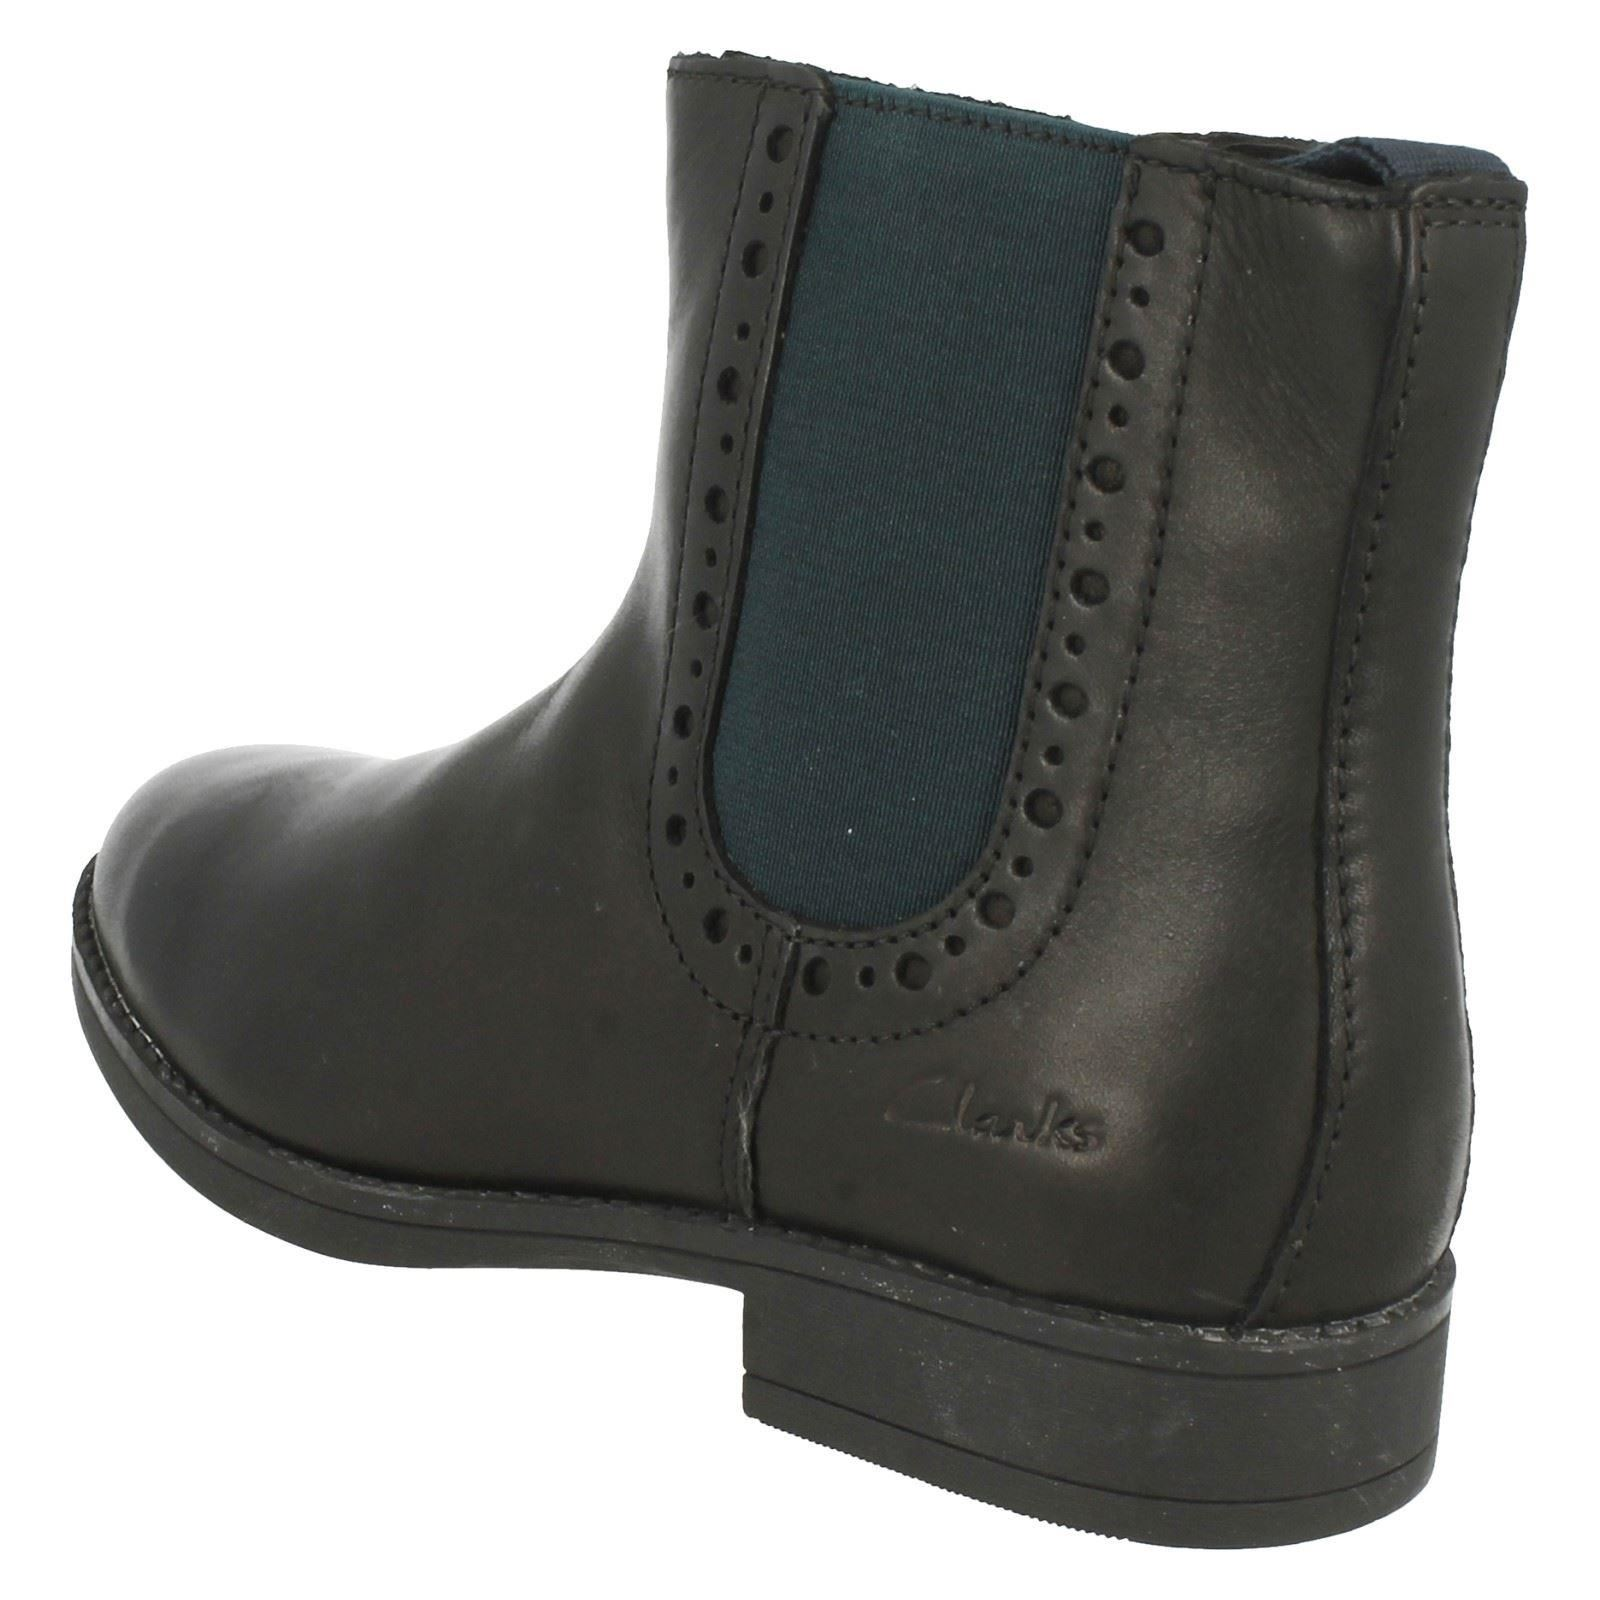 336411d4905 Details about Girls Clarks Ankle Boots Sami Twirl